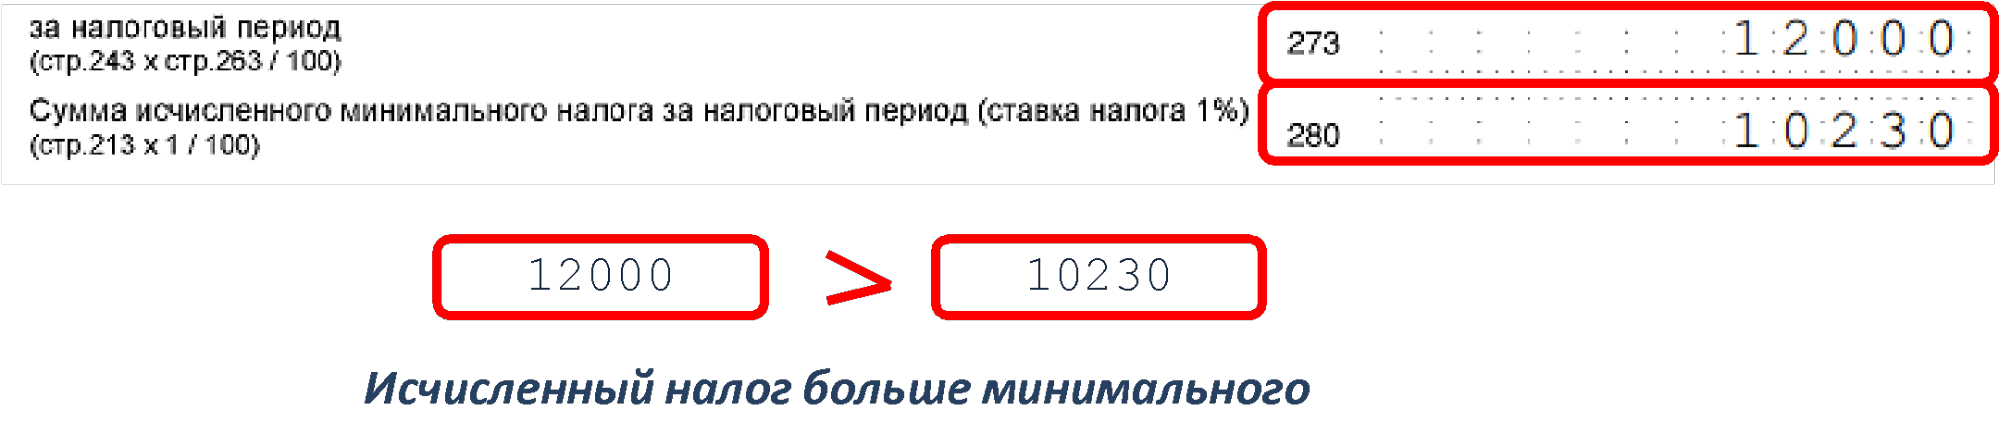 http://ppt.ru/images/news/130274-6.png